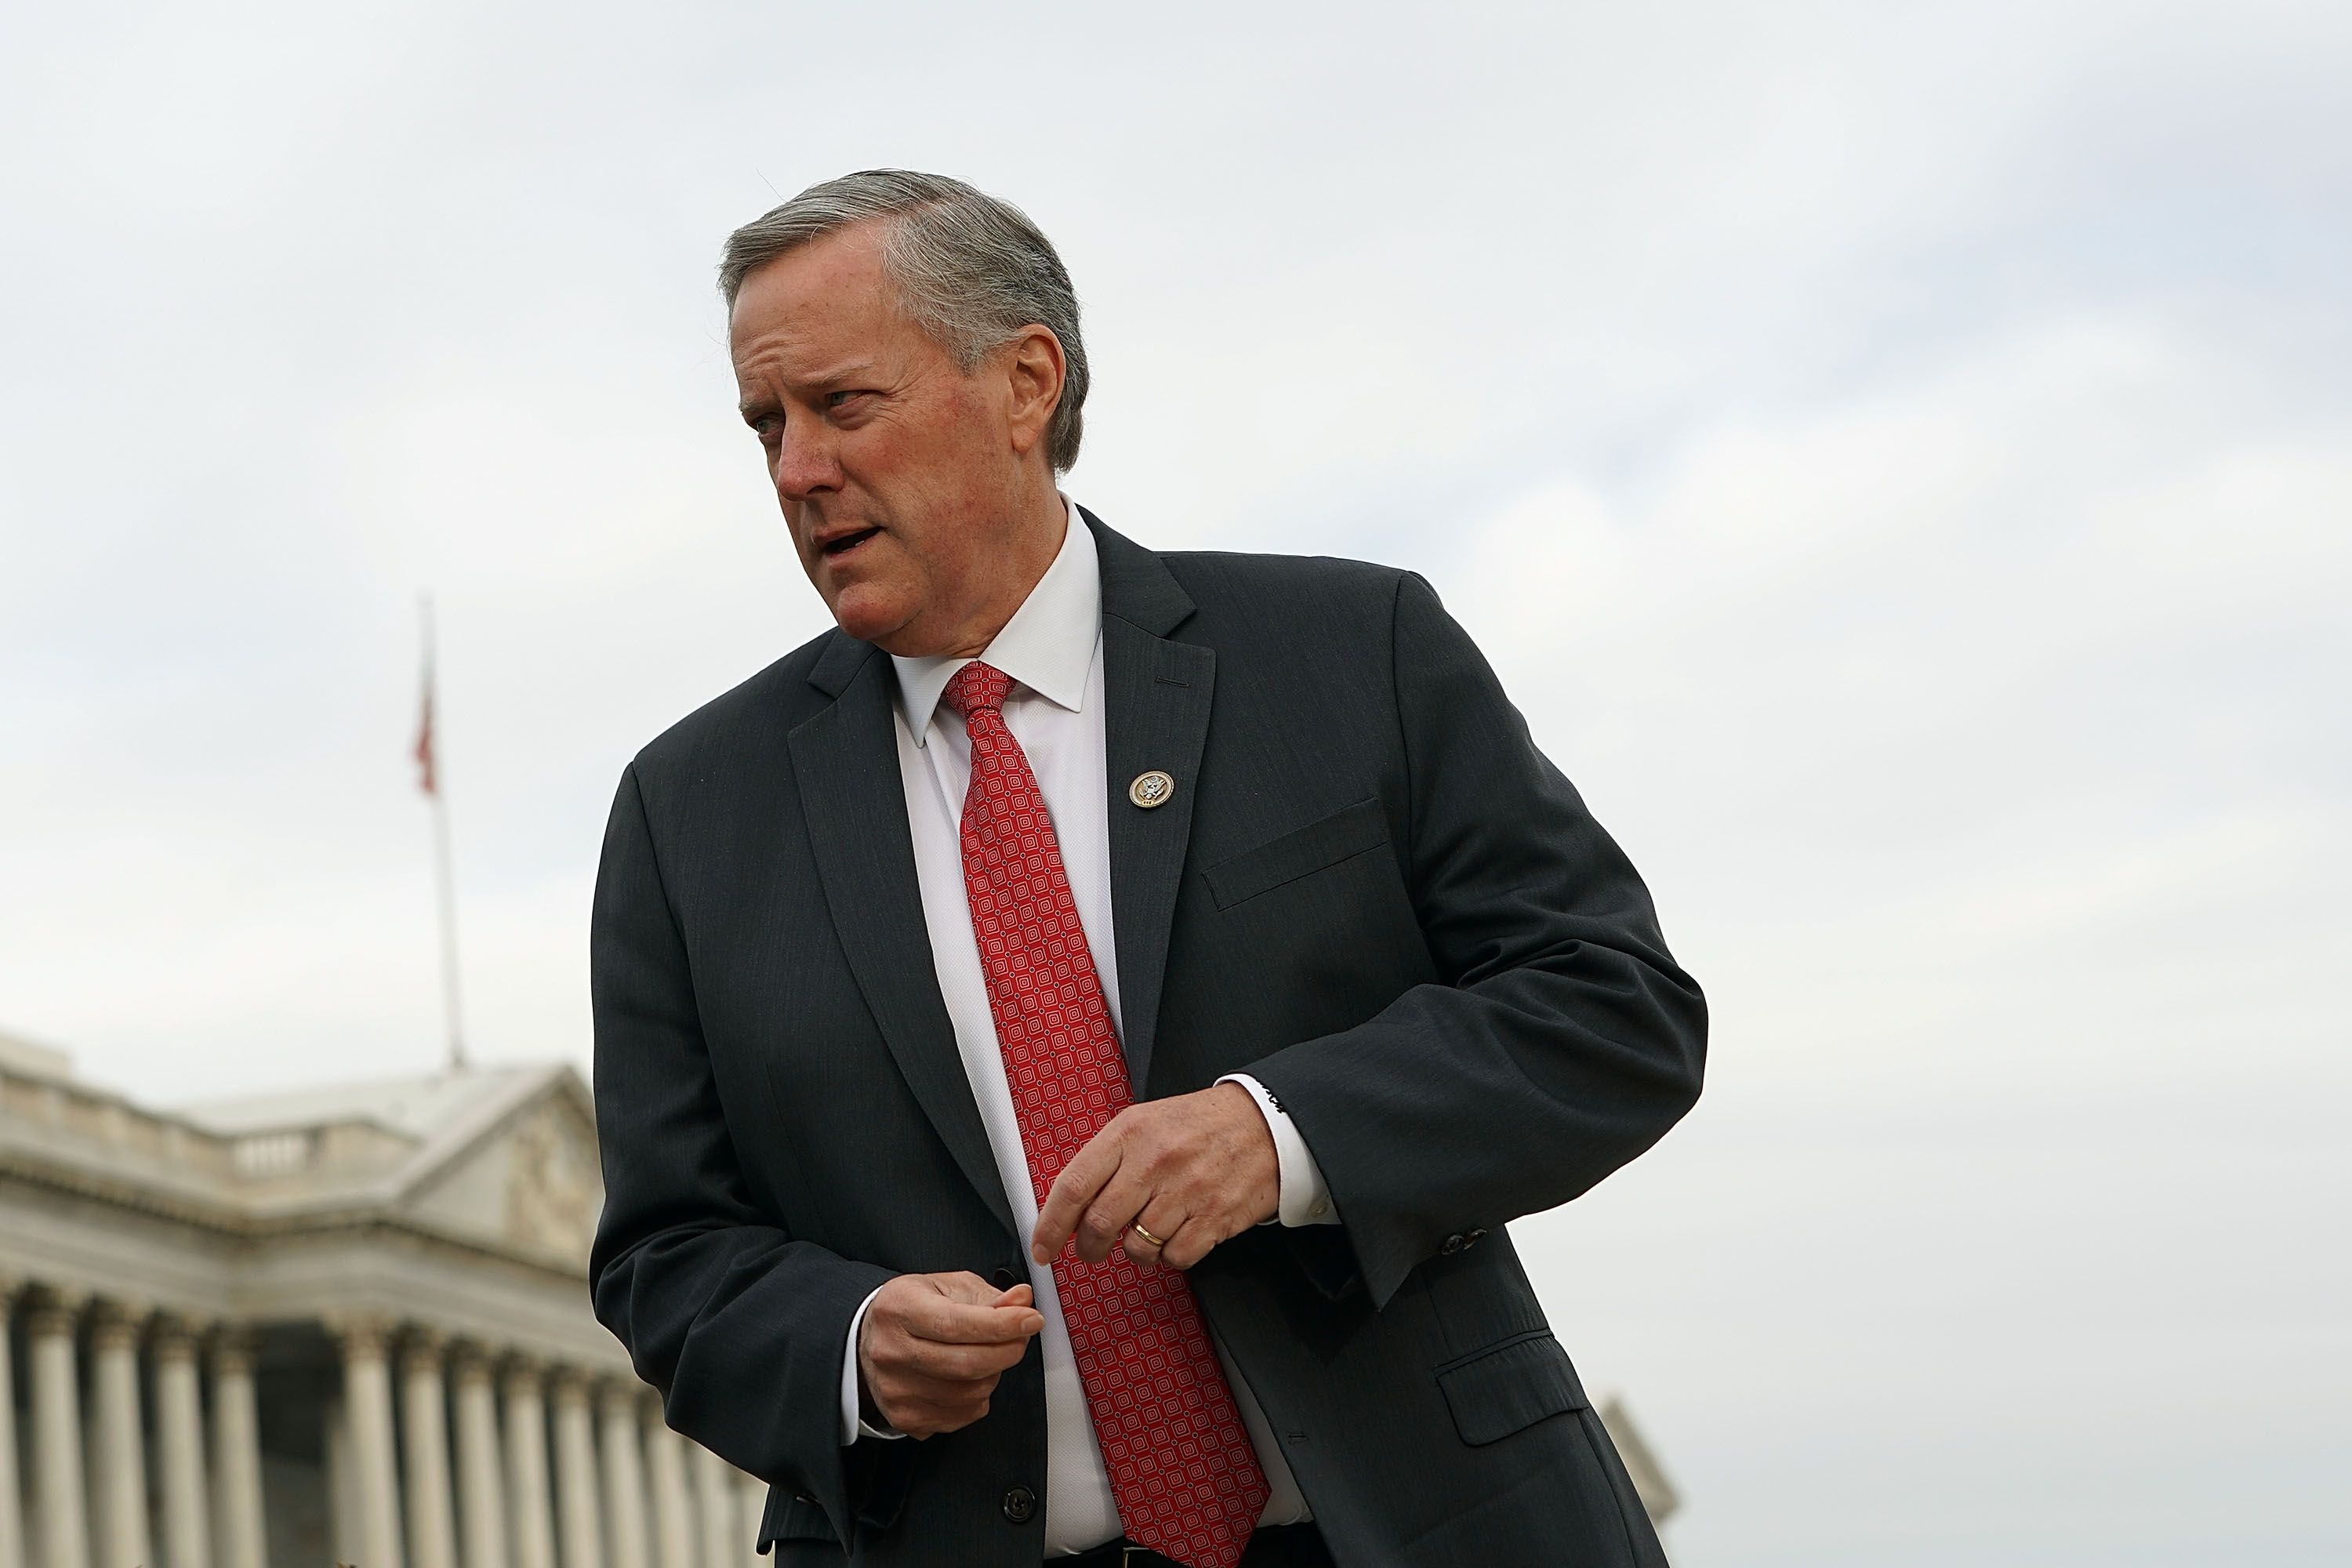 Freedom Caucus Loon Mark Meadows Is Now Embroiled in a Creationist Dinosaur Dig Controversy